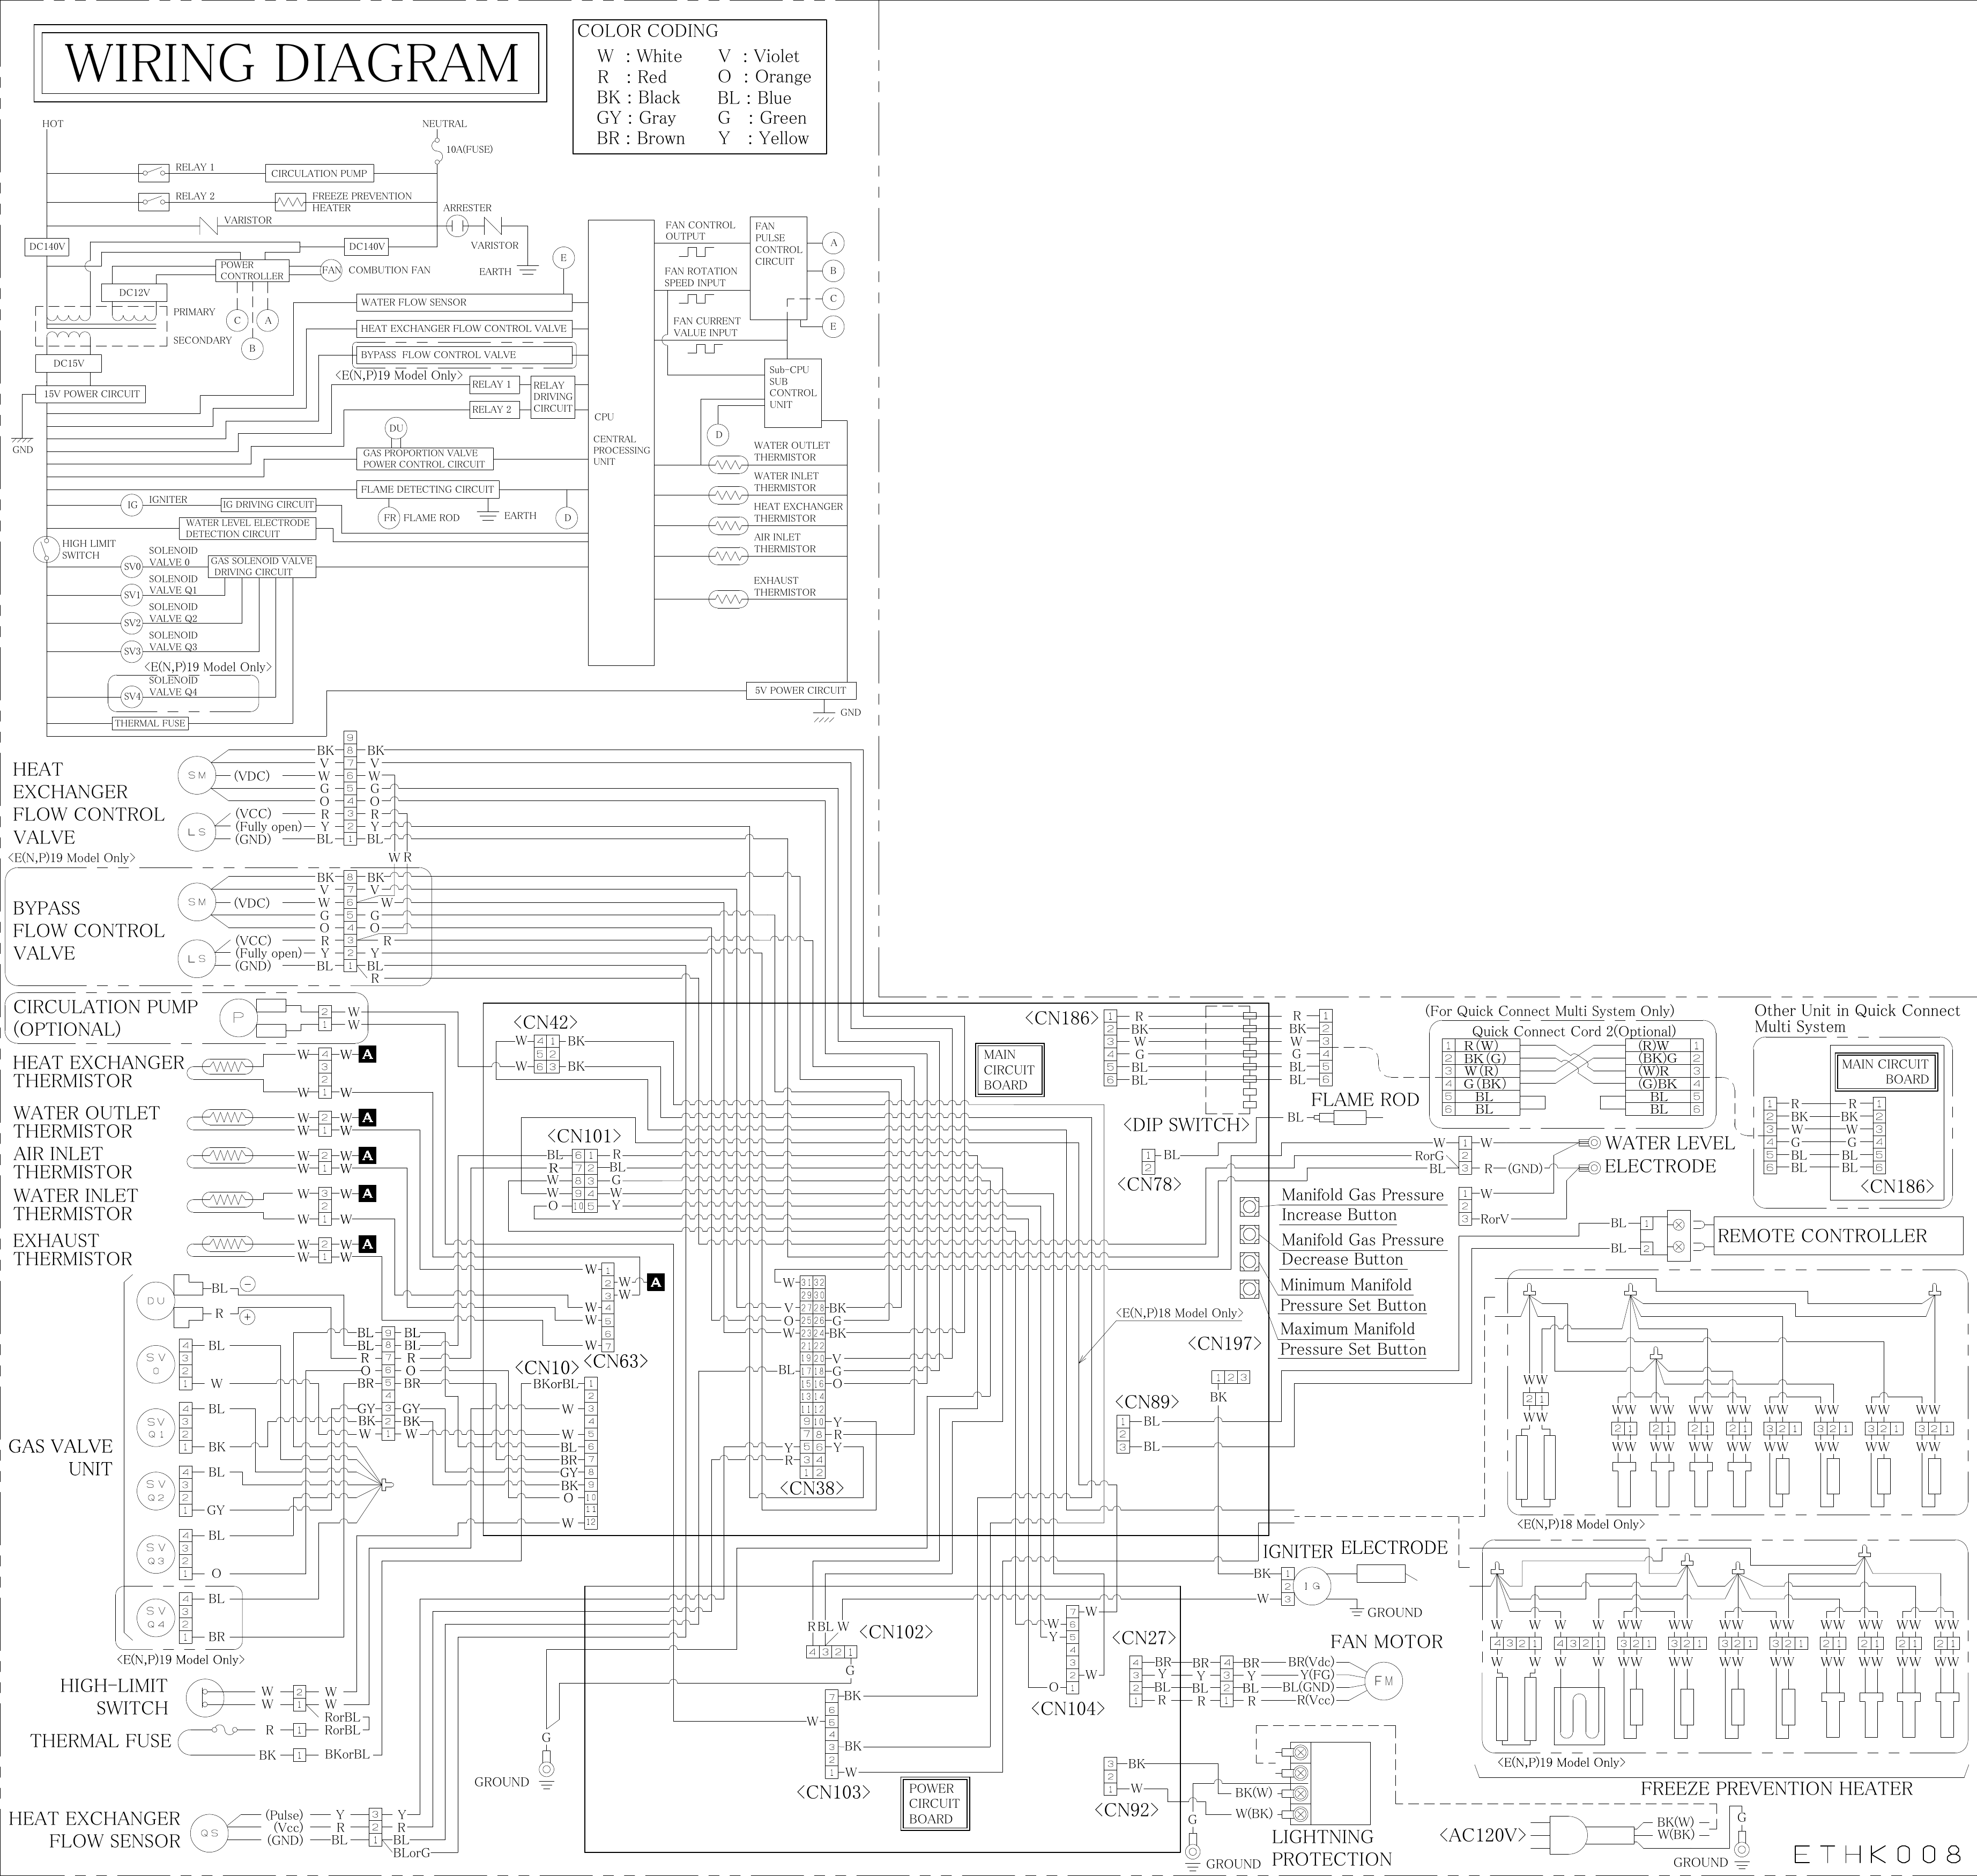 Electrolux Liquid Propane Condensing Tankless Water Heater Instant Wiring Diagram Page 1 Of